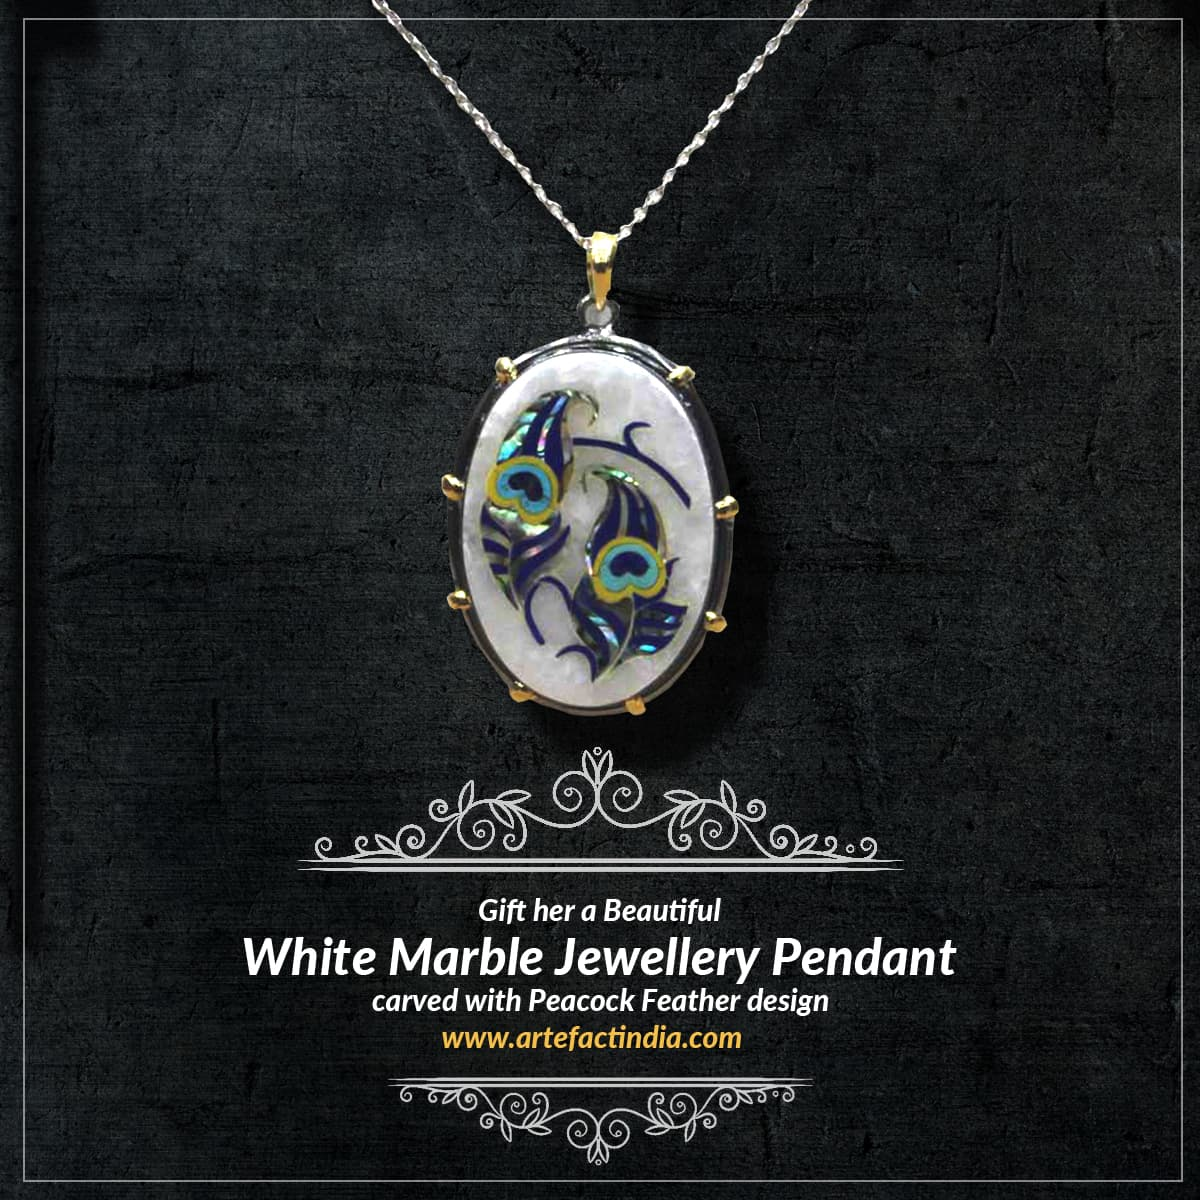 908a798c60f1c Gift her a Beautiful White Marble Jewellery Pendant carved with ...